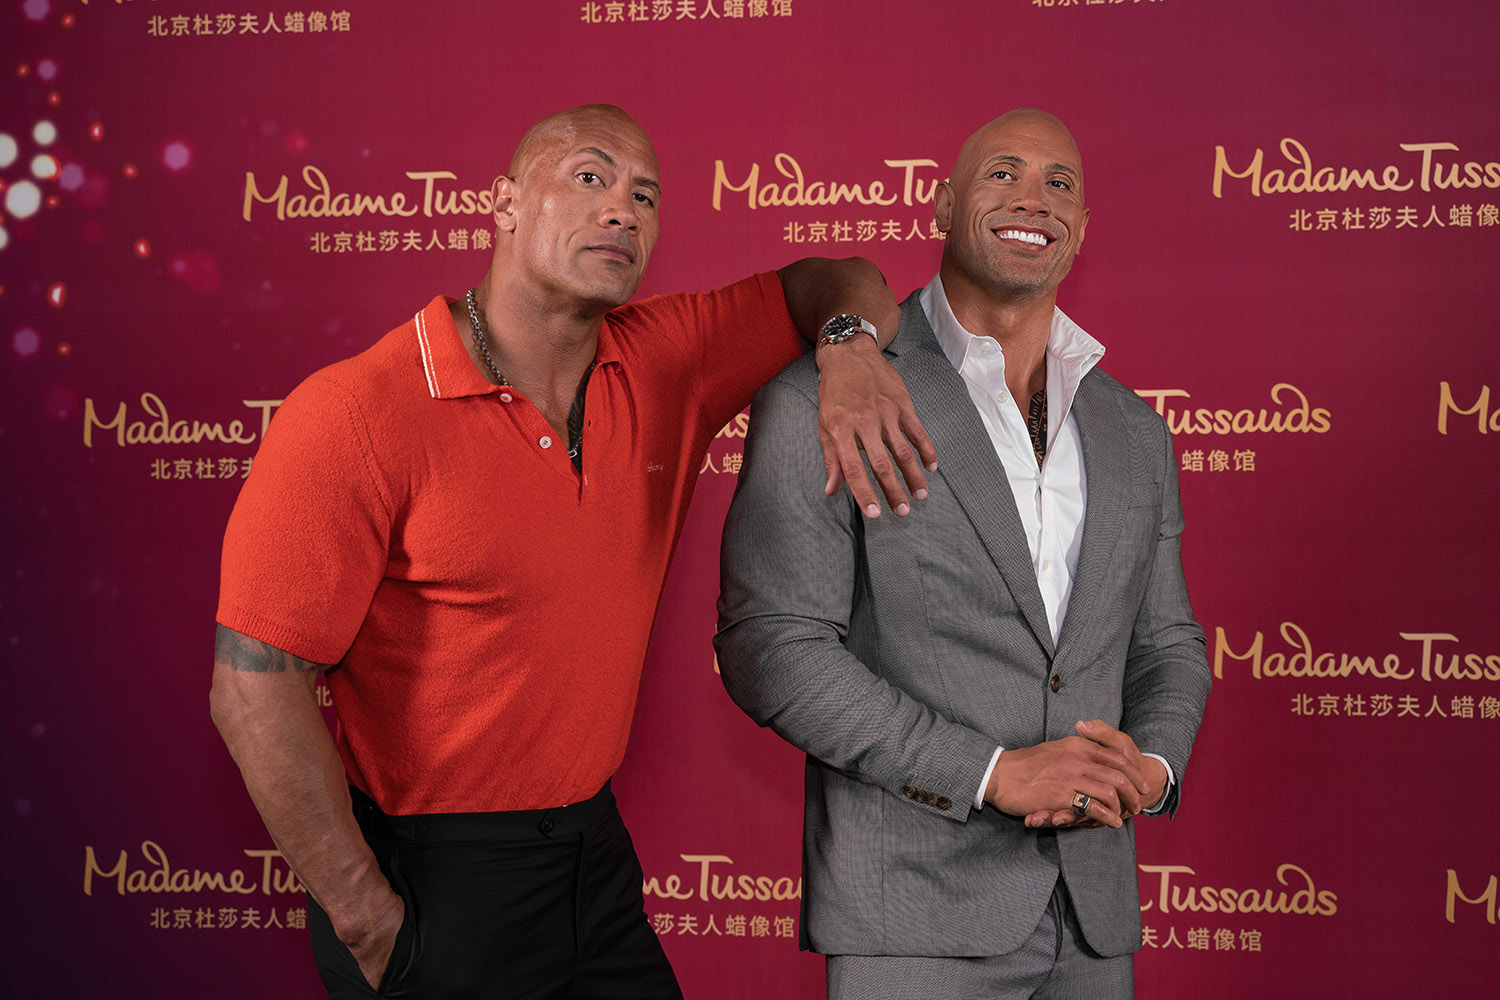 Dwayne Johnson with his figure at Madame Tussauds